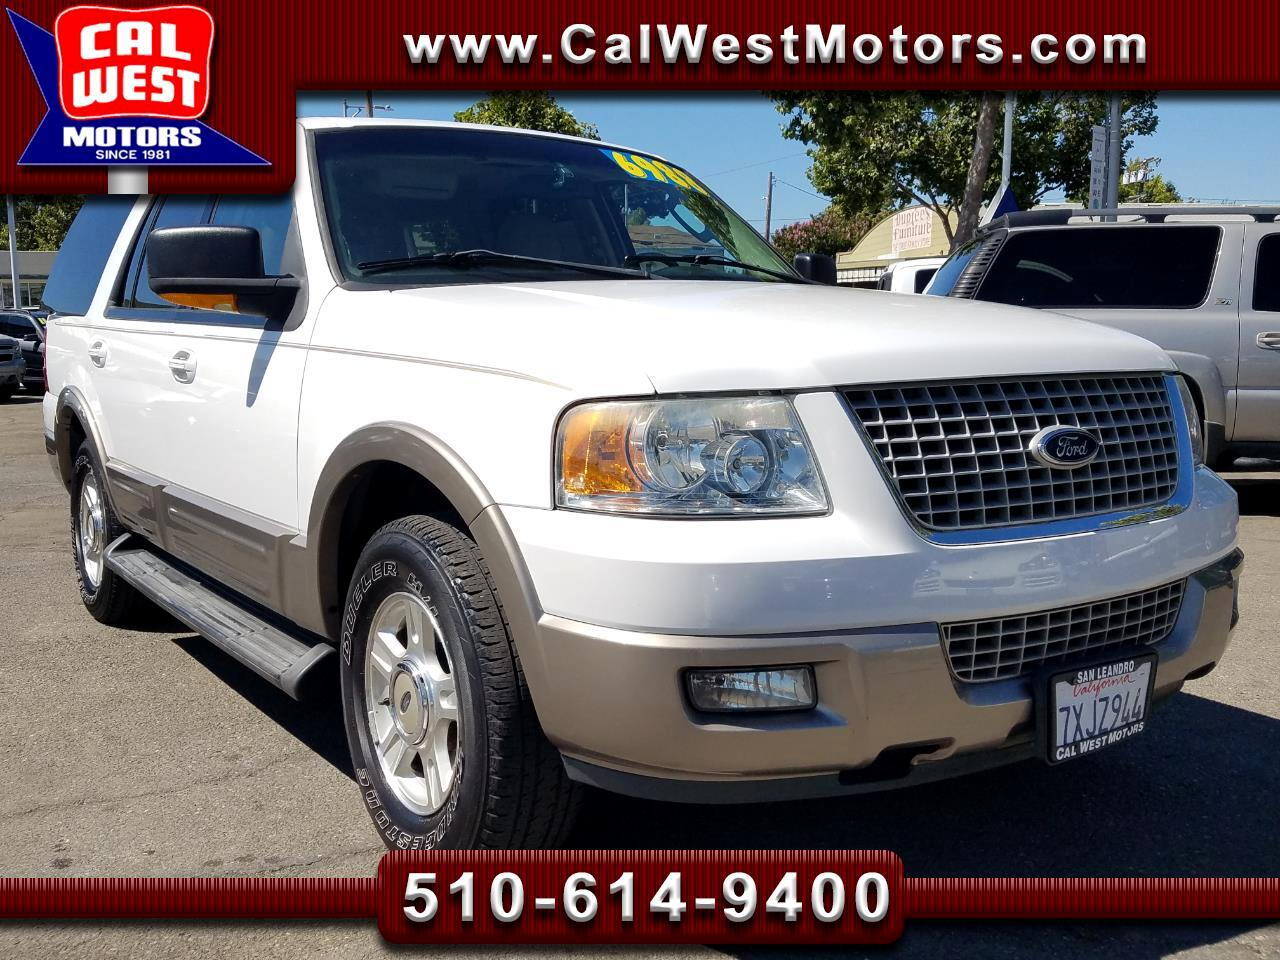 2003 Ford Expedition Eddie Bauer 5.4L 3Rows DVD Roof Leather Nice